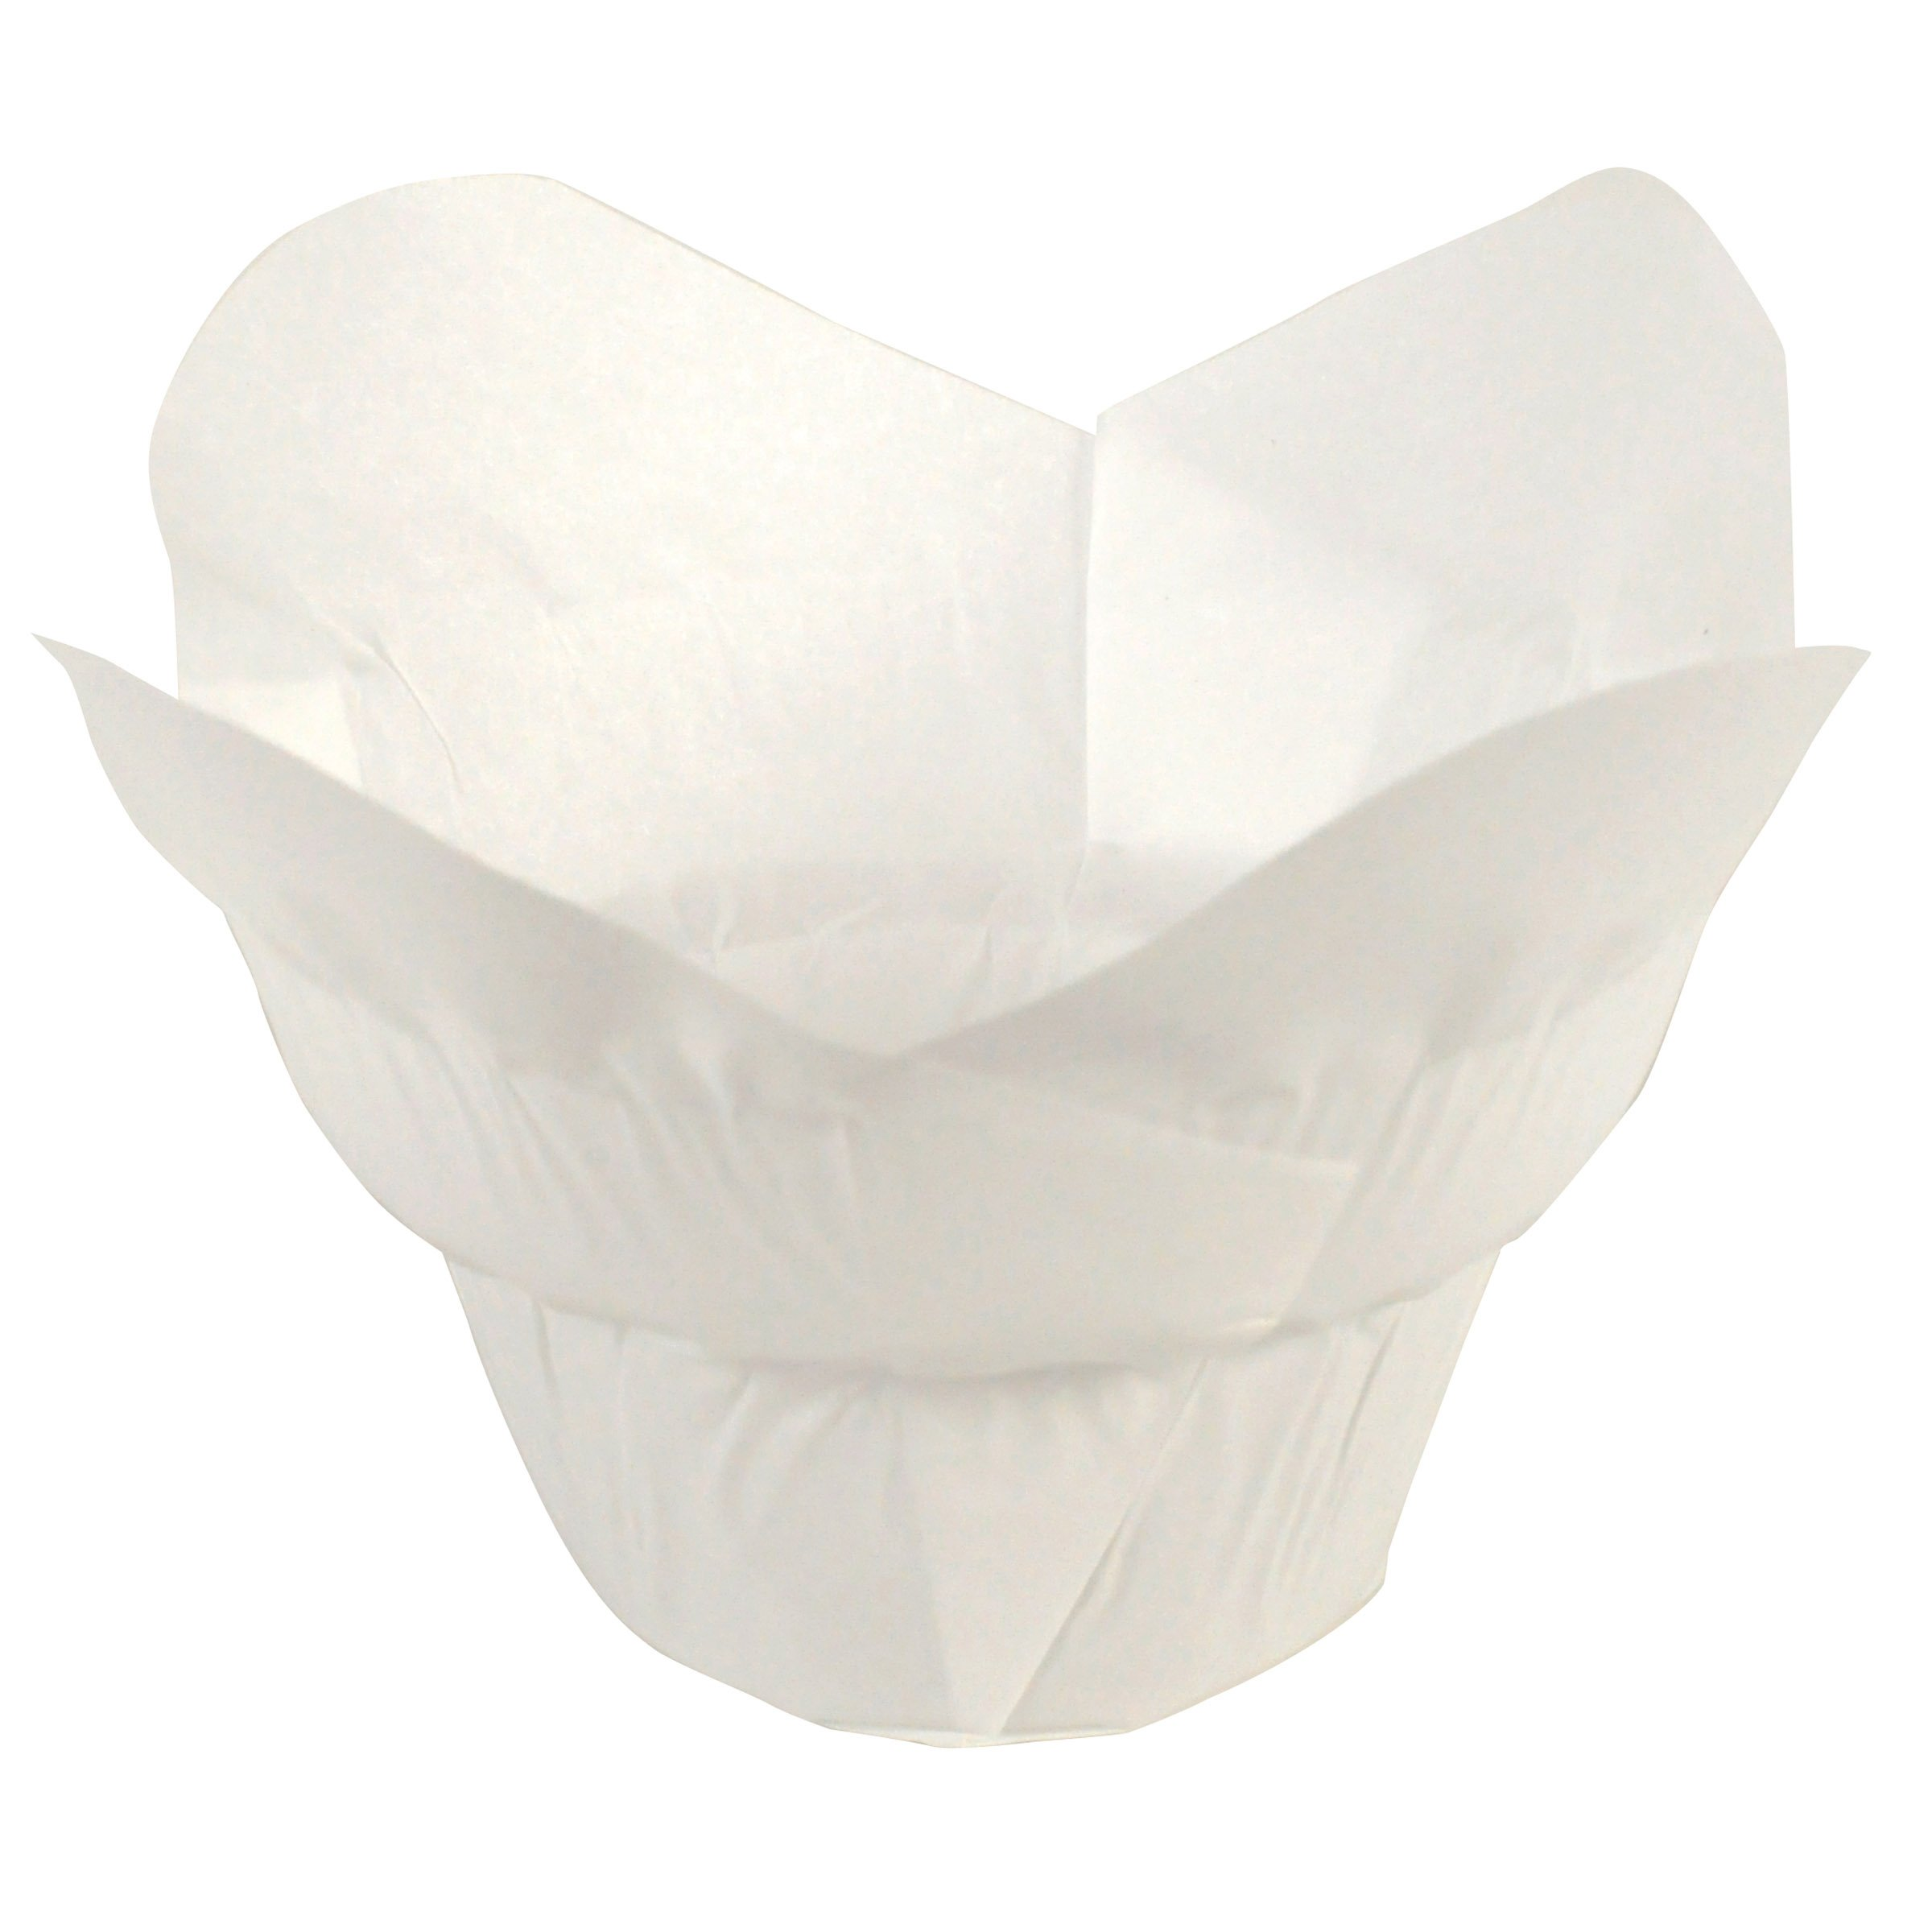 Hoffmaster 611110 Lotus Cup Cupcake Wrapper/Baking Cup, 1-1/4'' Diameter x 2-1/4'' Height, Small, White (10 Packs of 250)